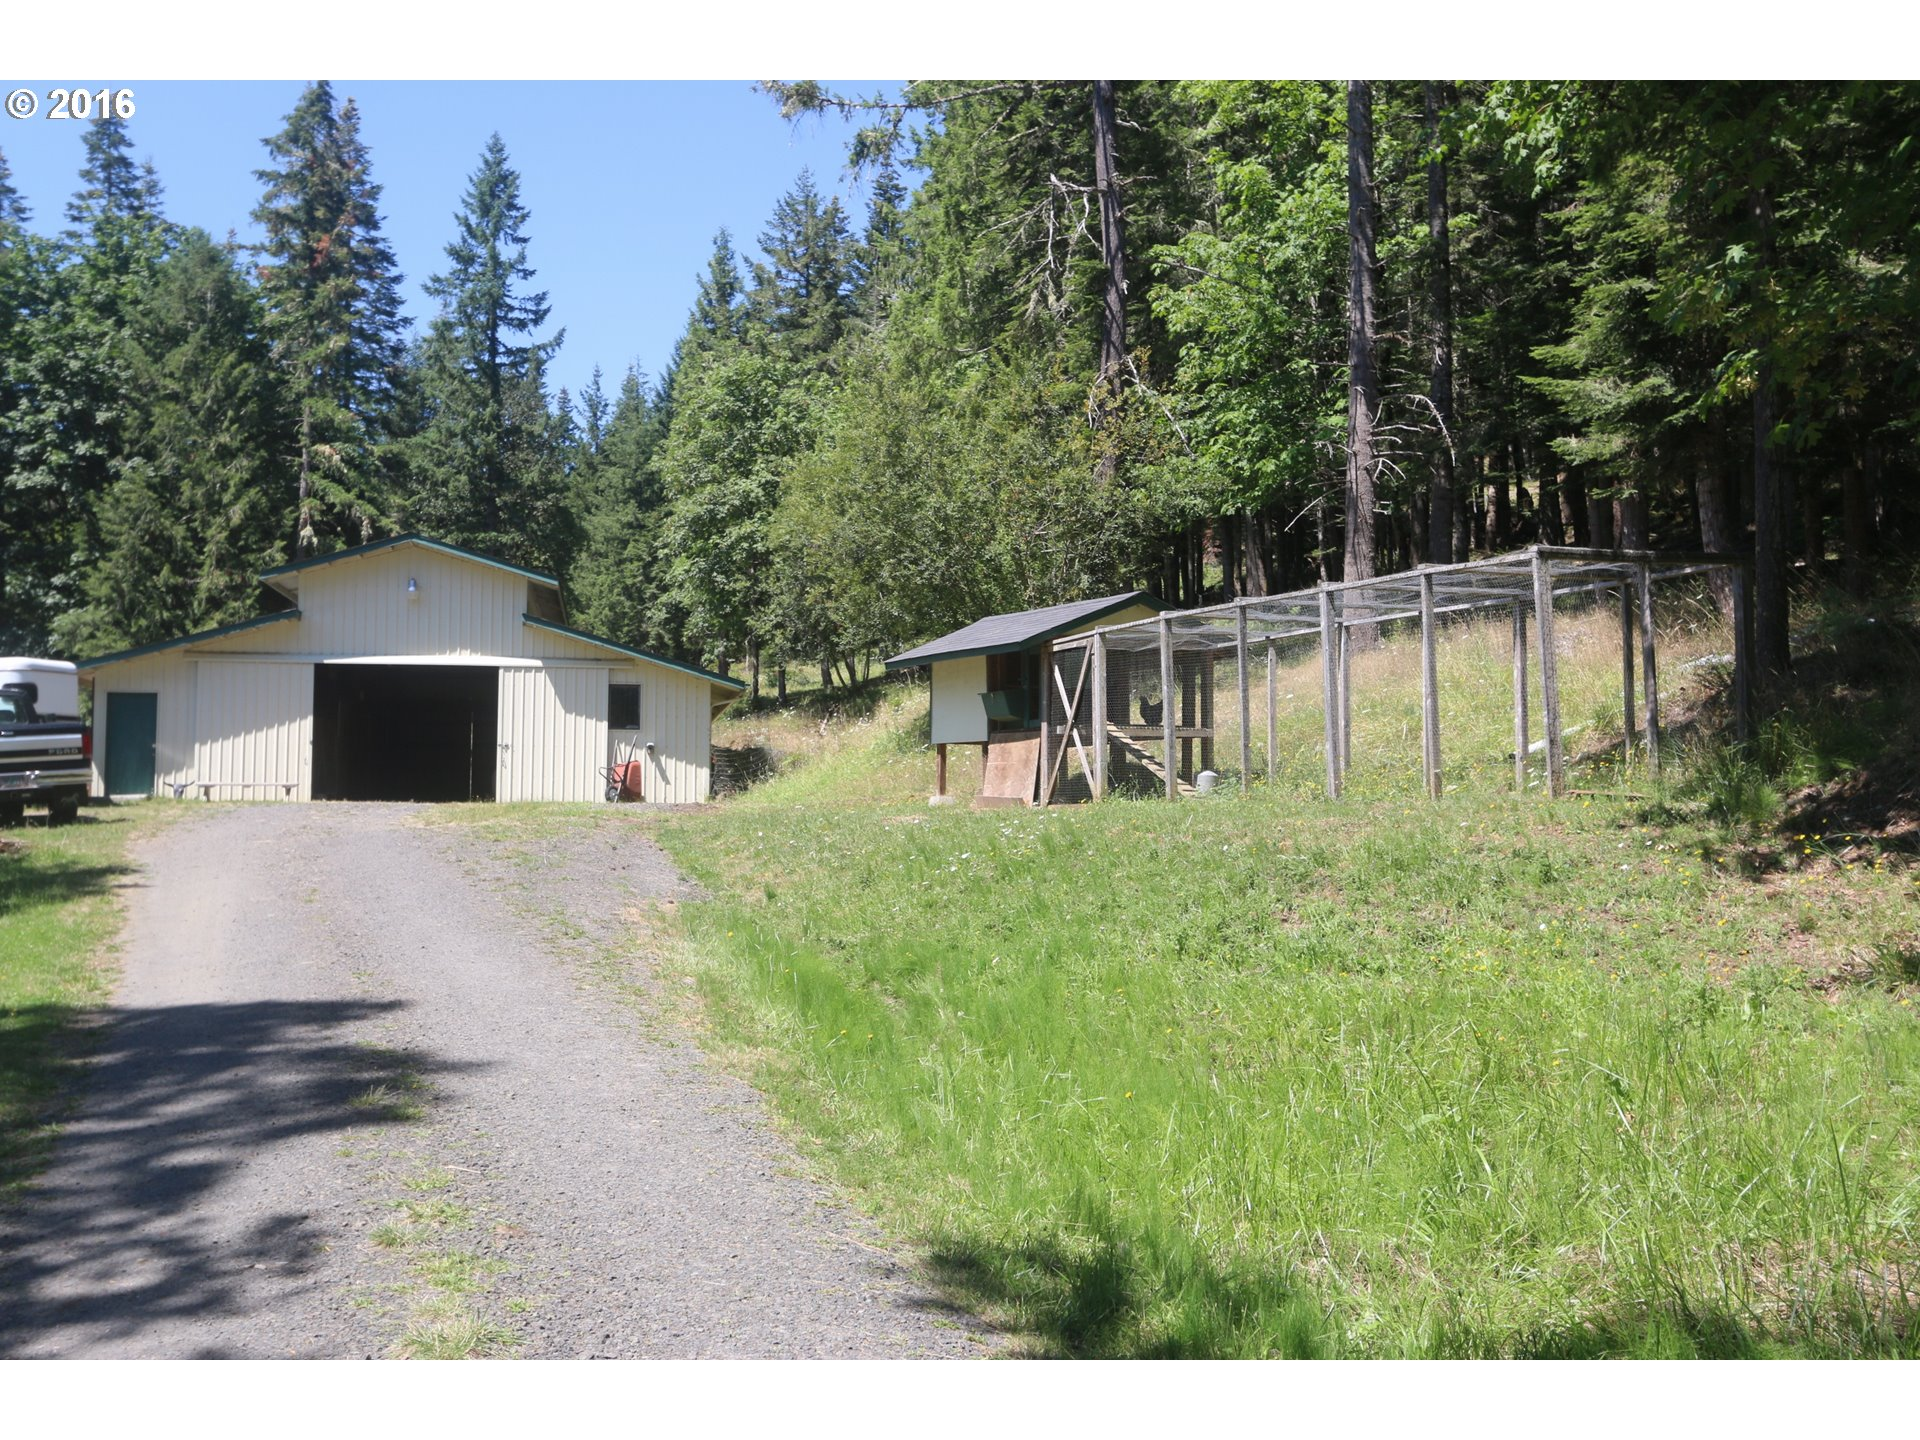 32507 WILSON CREEK RD Cottage Grove, OR 97424 - MLS #: 17543600